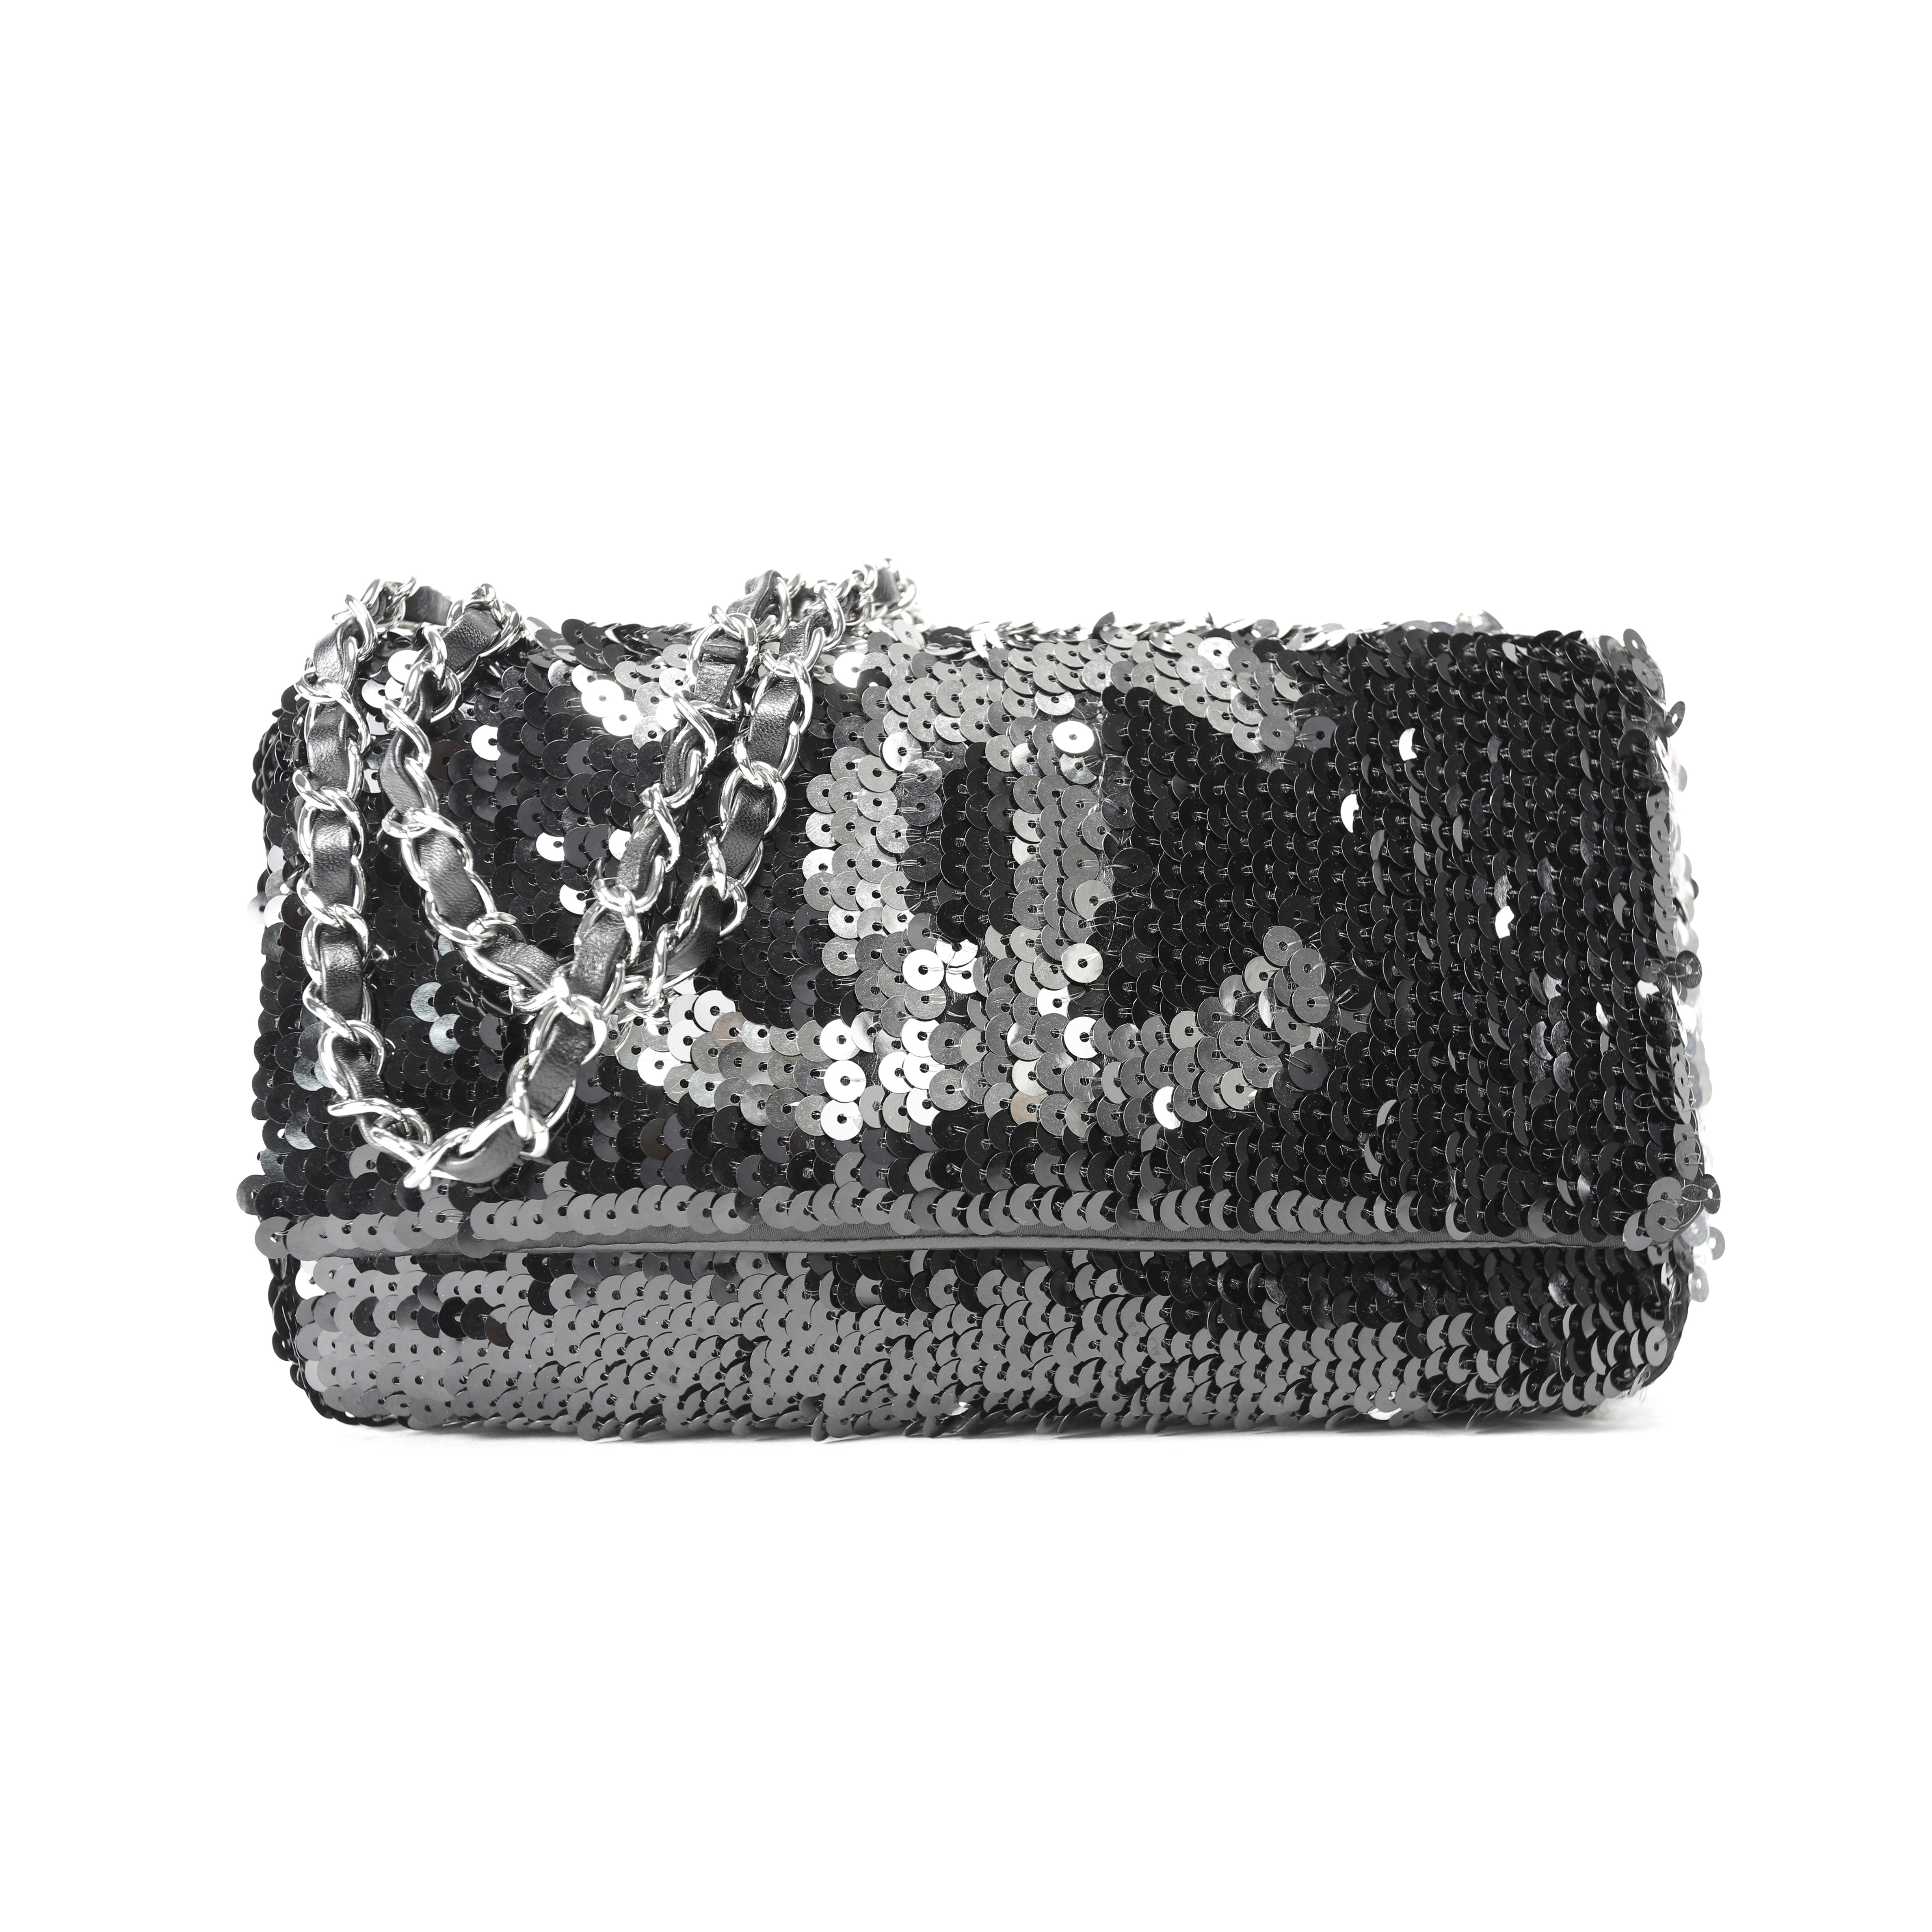 b42bdbc2ab64 Authentic Second Hand Chanel Sequin Reversible Summer Night Flap Bag  (PSS-051-00015) | THE FIFTH COLLECTION